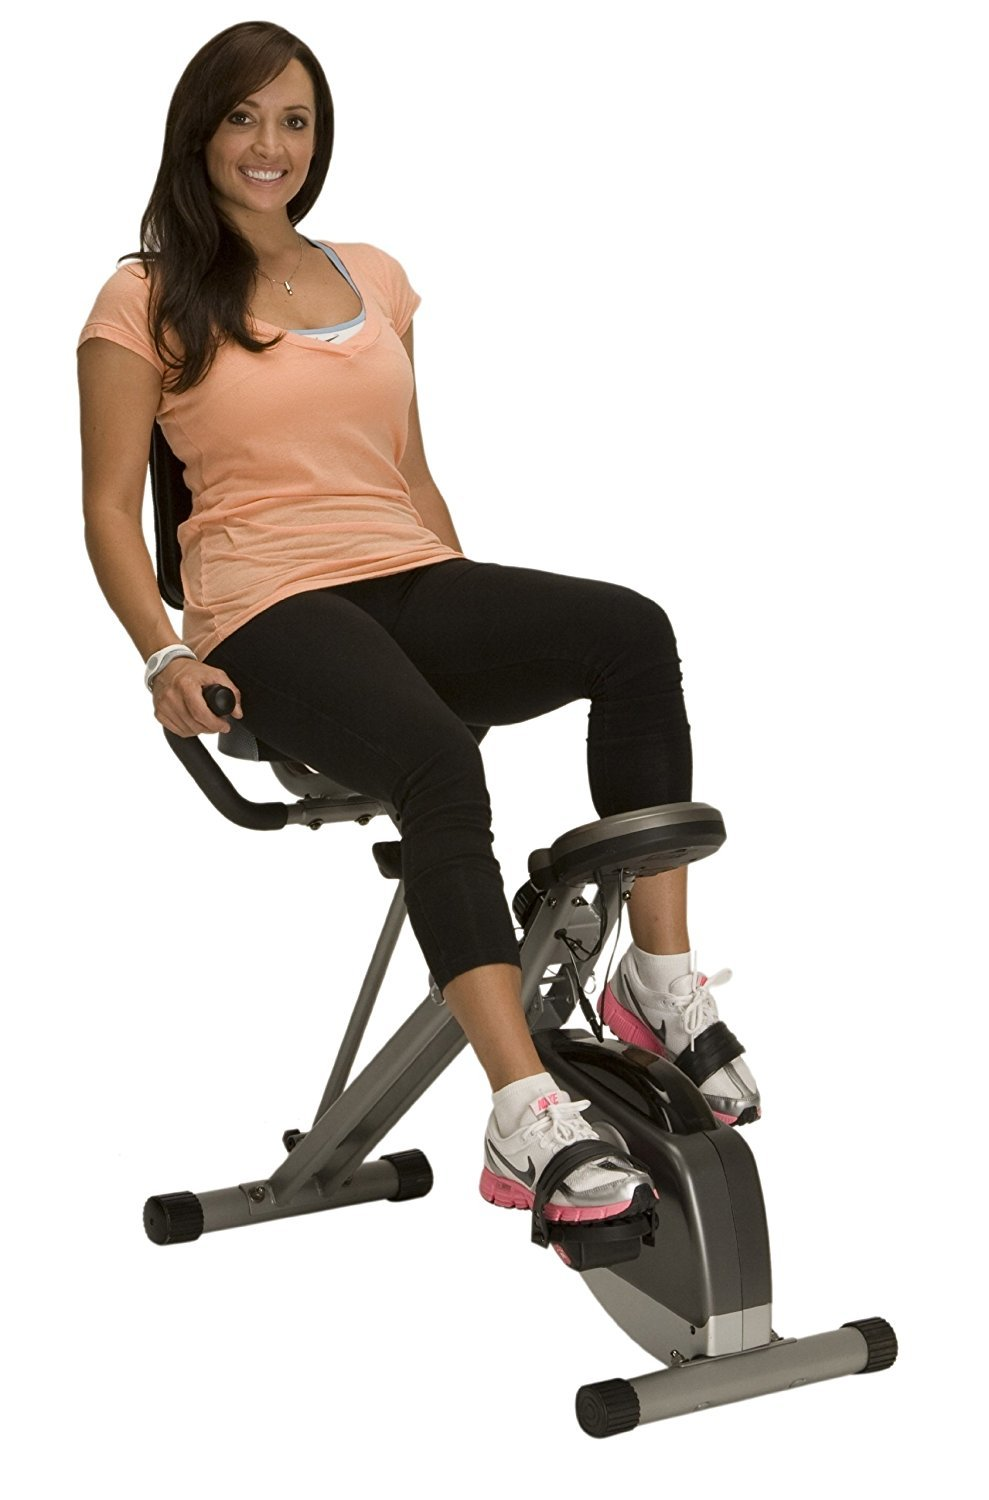 image showing the Exerpeutic 400XL Folding Recumbent Bike